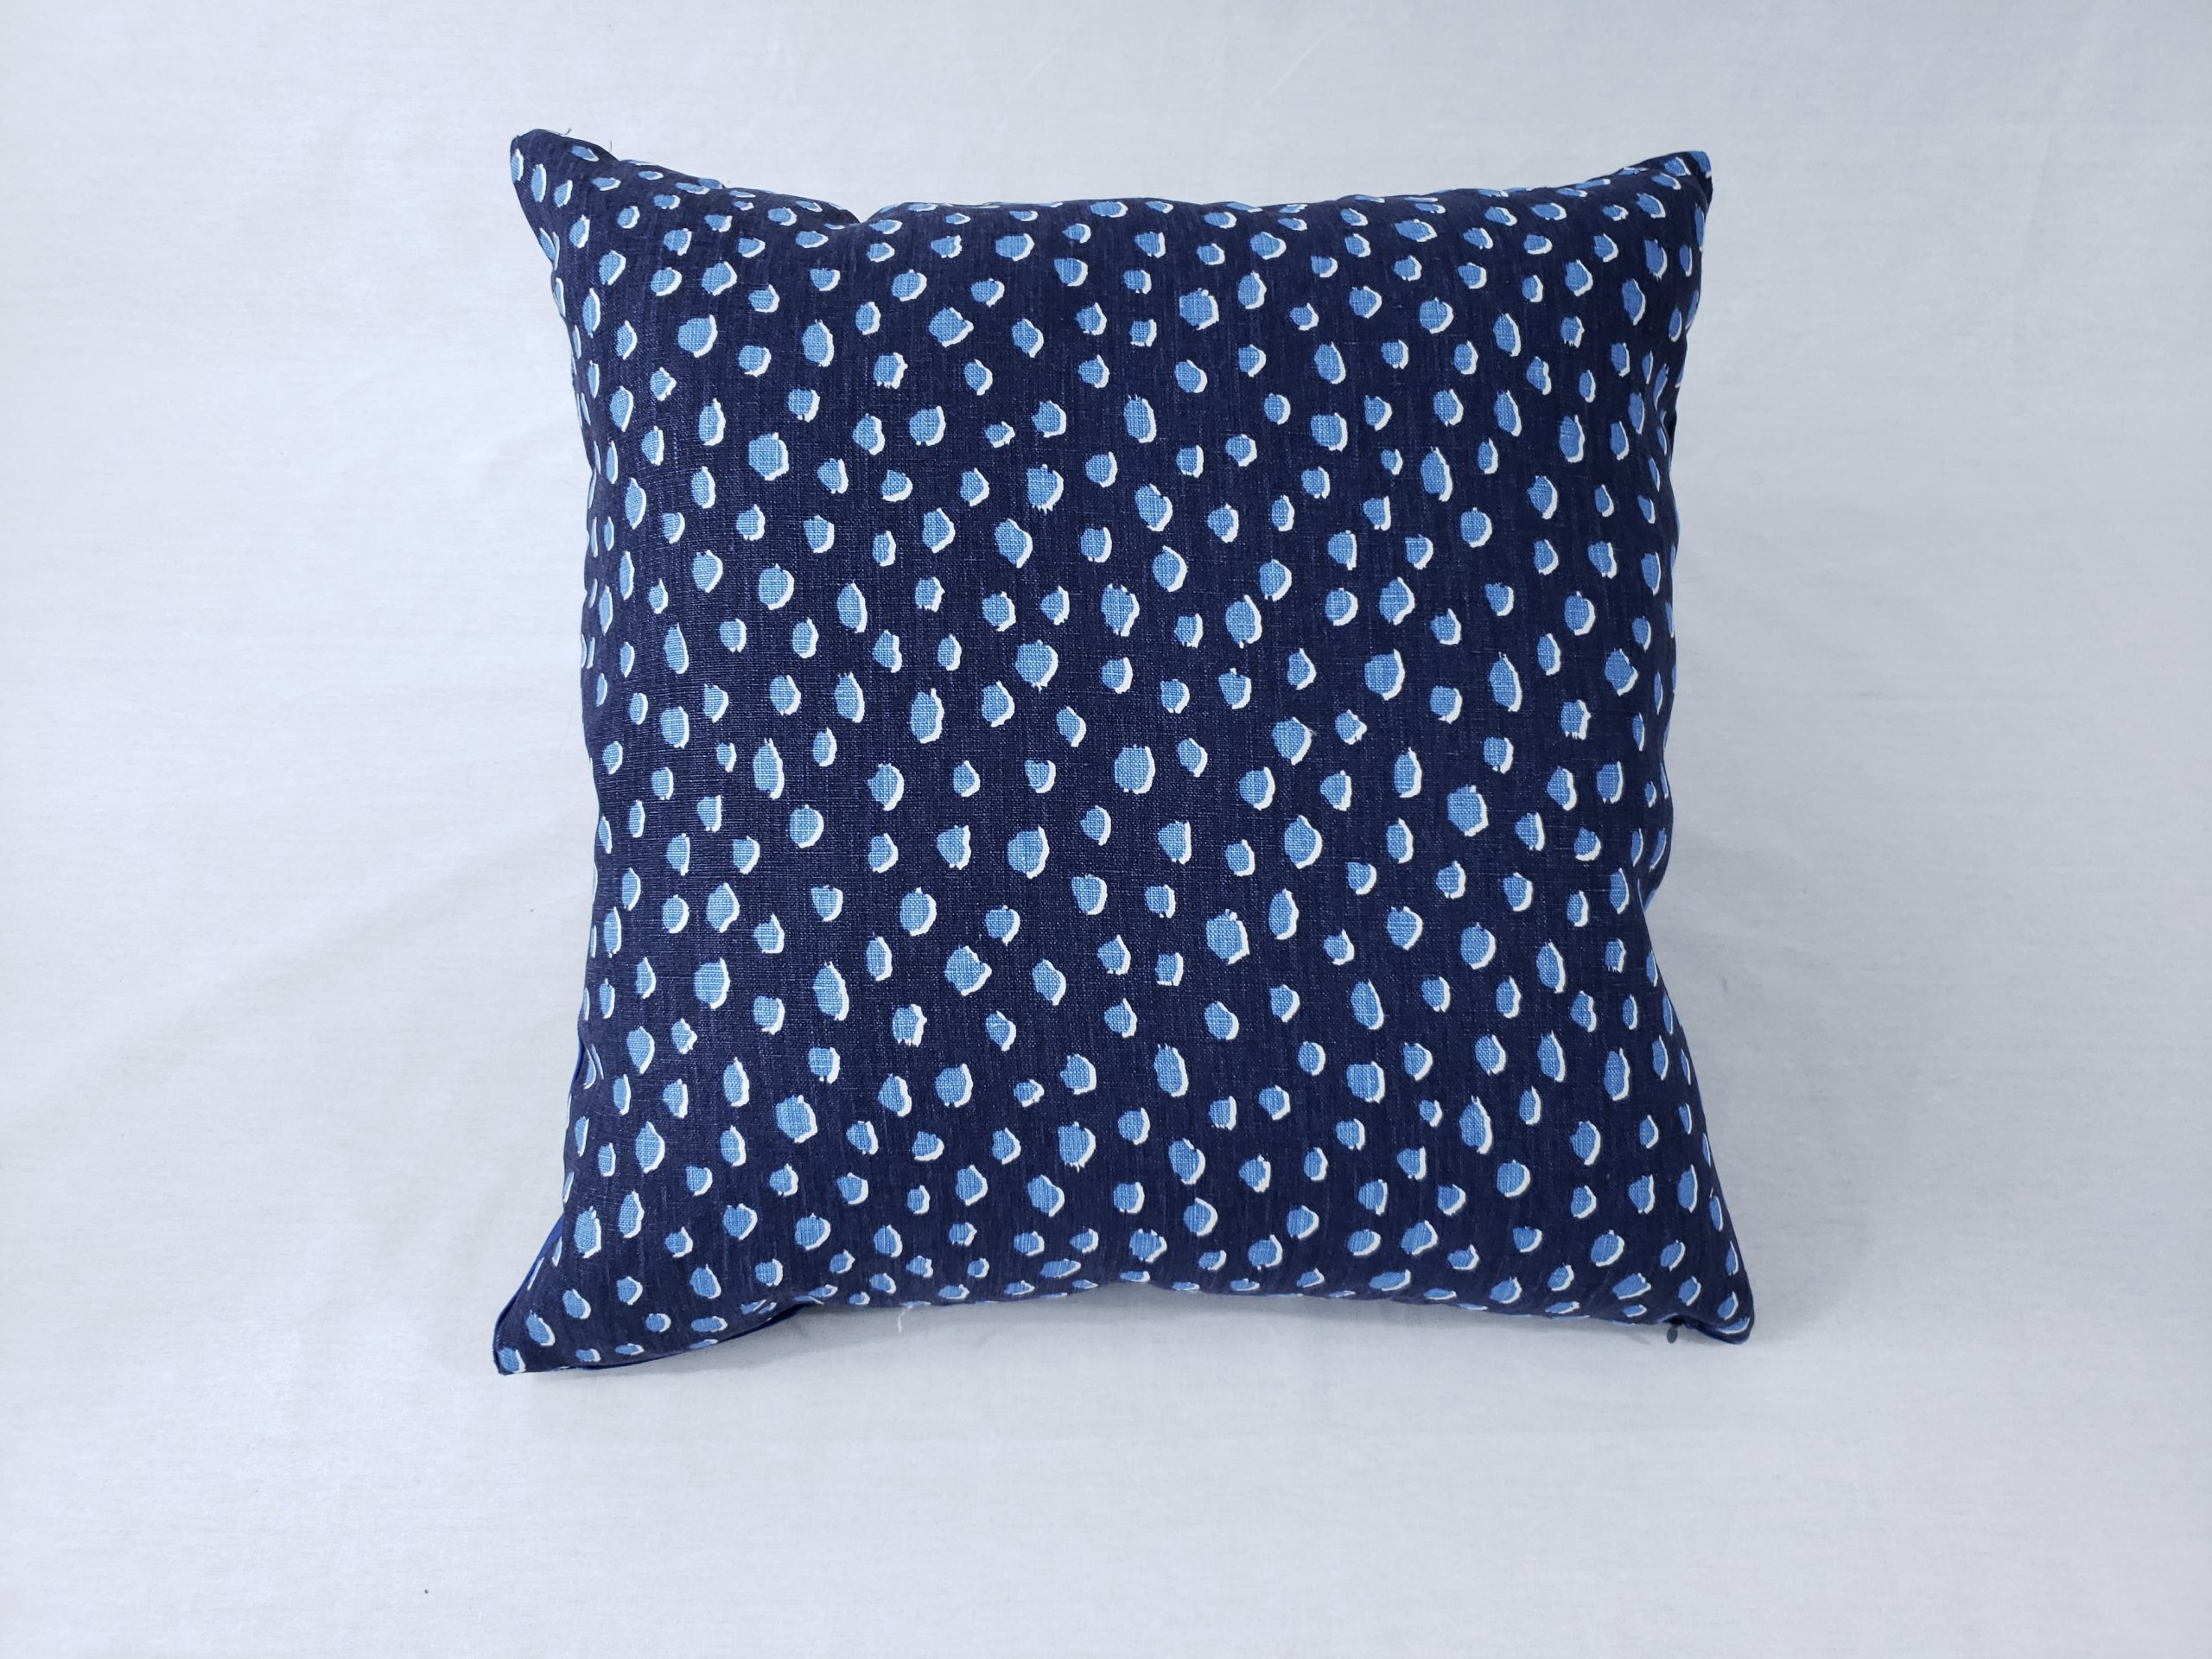 A kate spade blue polkadot cushion